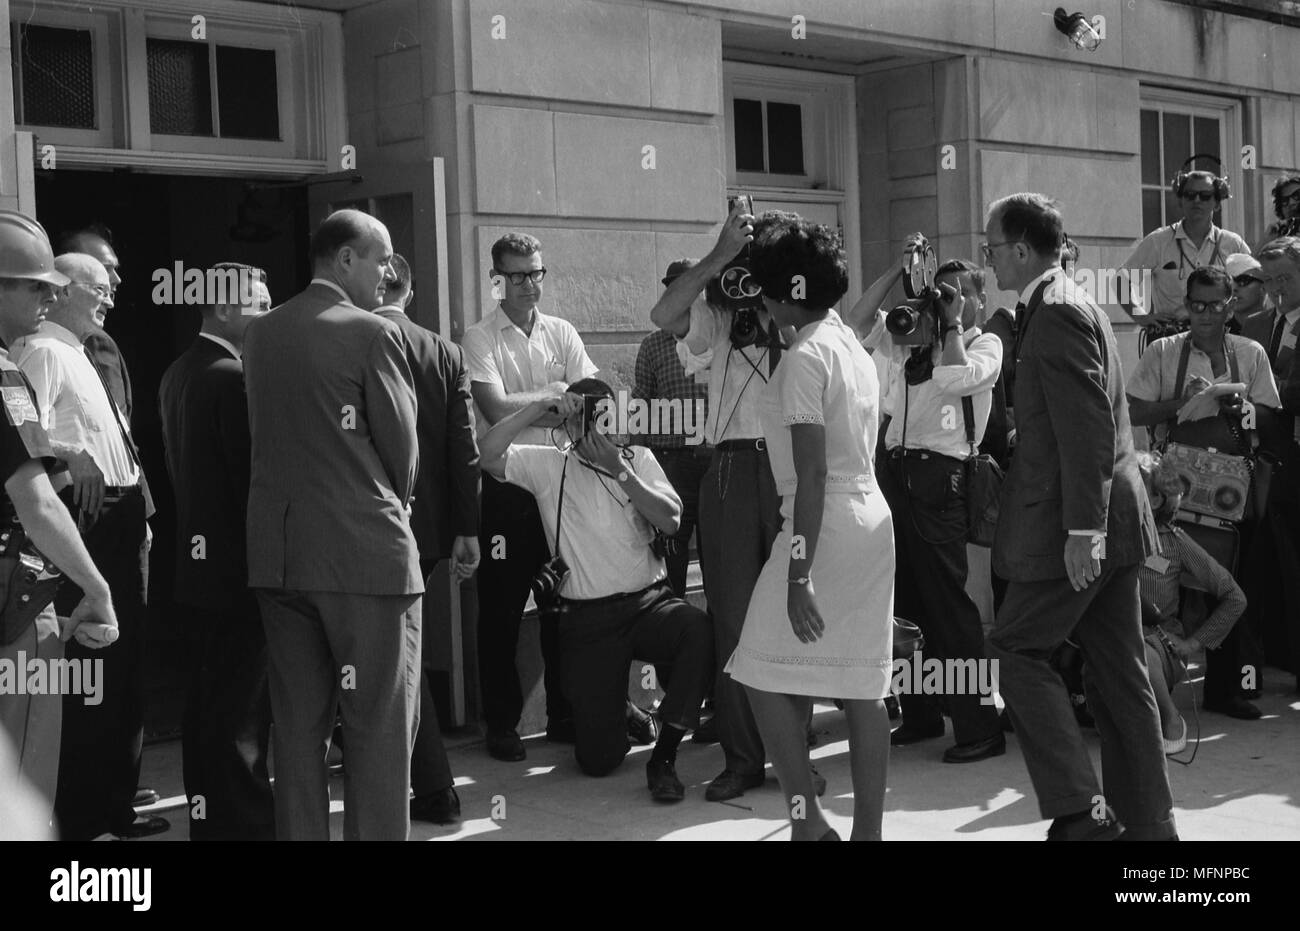 Vivian Malone entering Foster Auditorium to register for classes at the University of Alabama.  One of the first African Americans to attend the university. Photographer:  Warren K.Leffler. - Stock Image